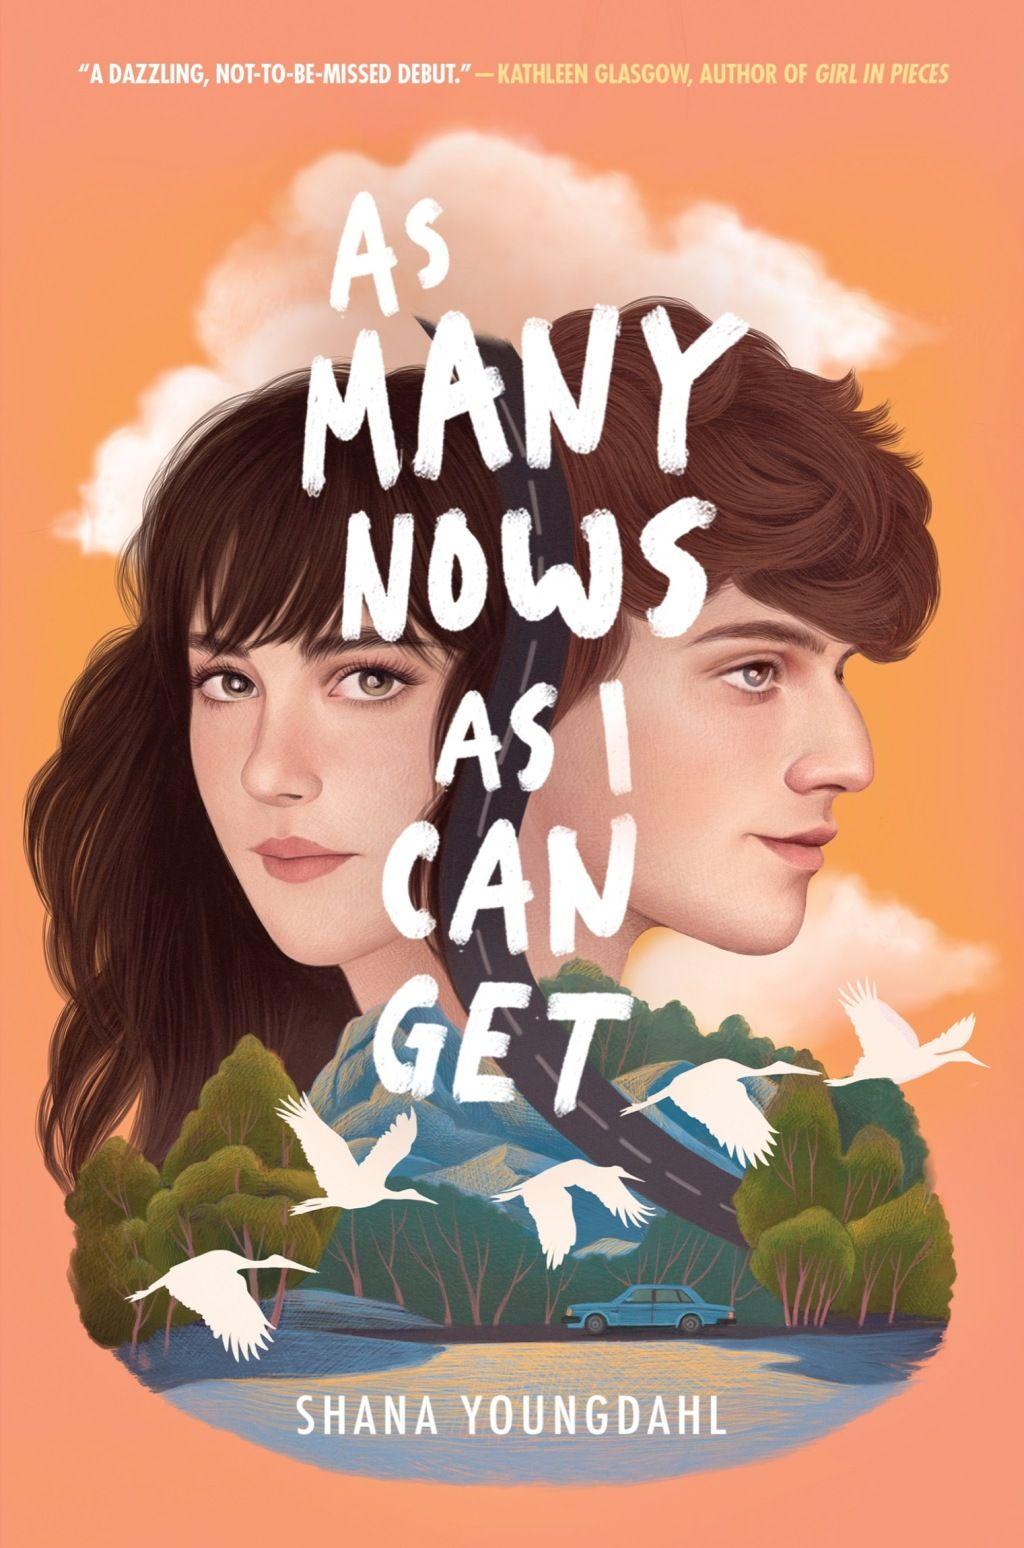 As Many Nows As I Can Get Ebook Best Books For Teens Wattpad Book Covers Books For Teens